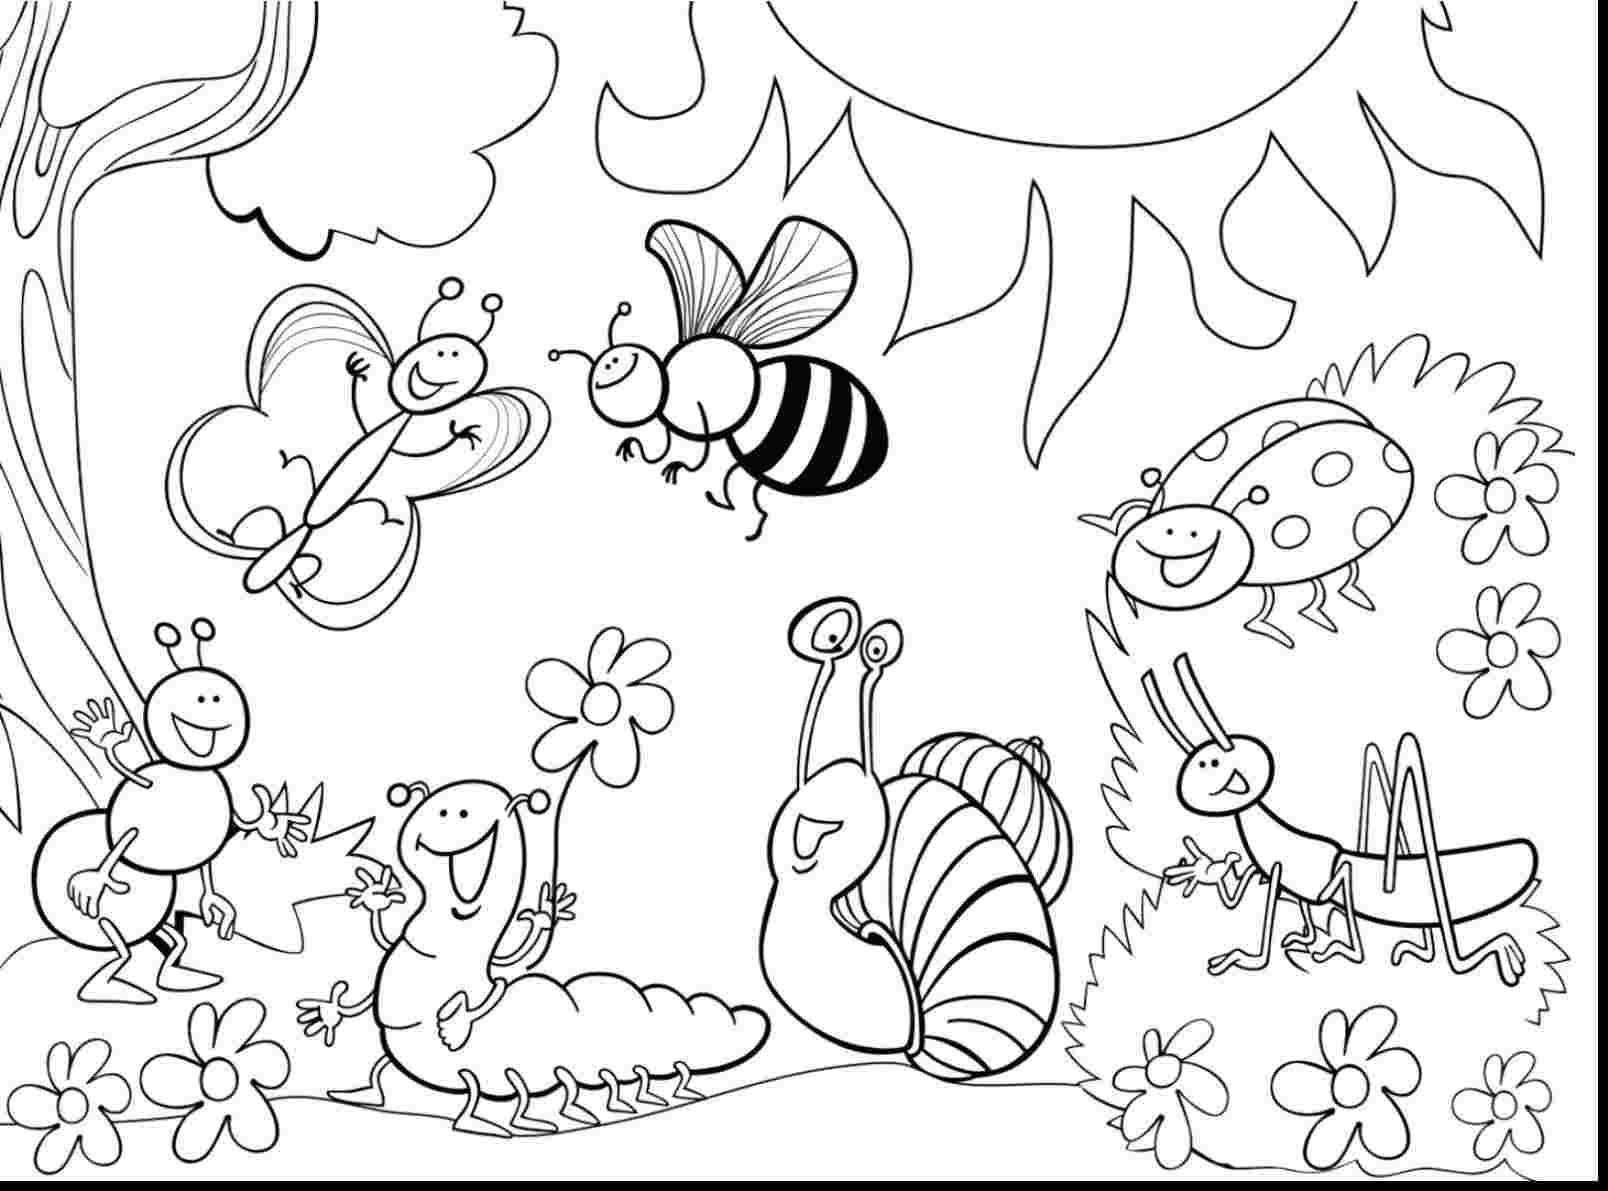 Coloring Pages Of Bugs And Insects Dieren Kleurplaten Kleurplaten Mandala